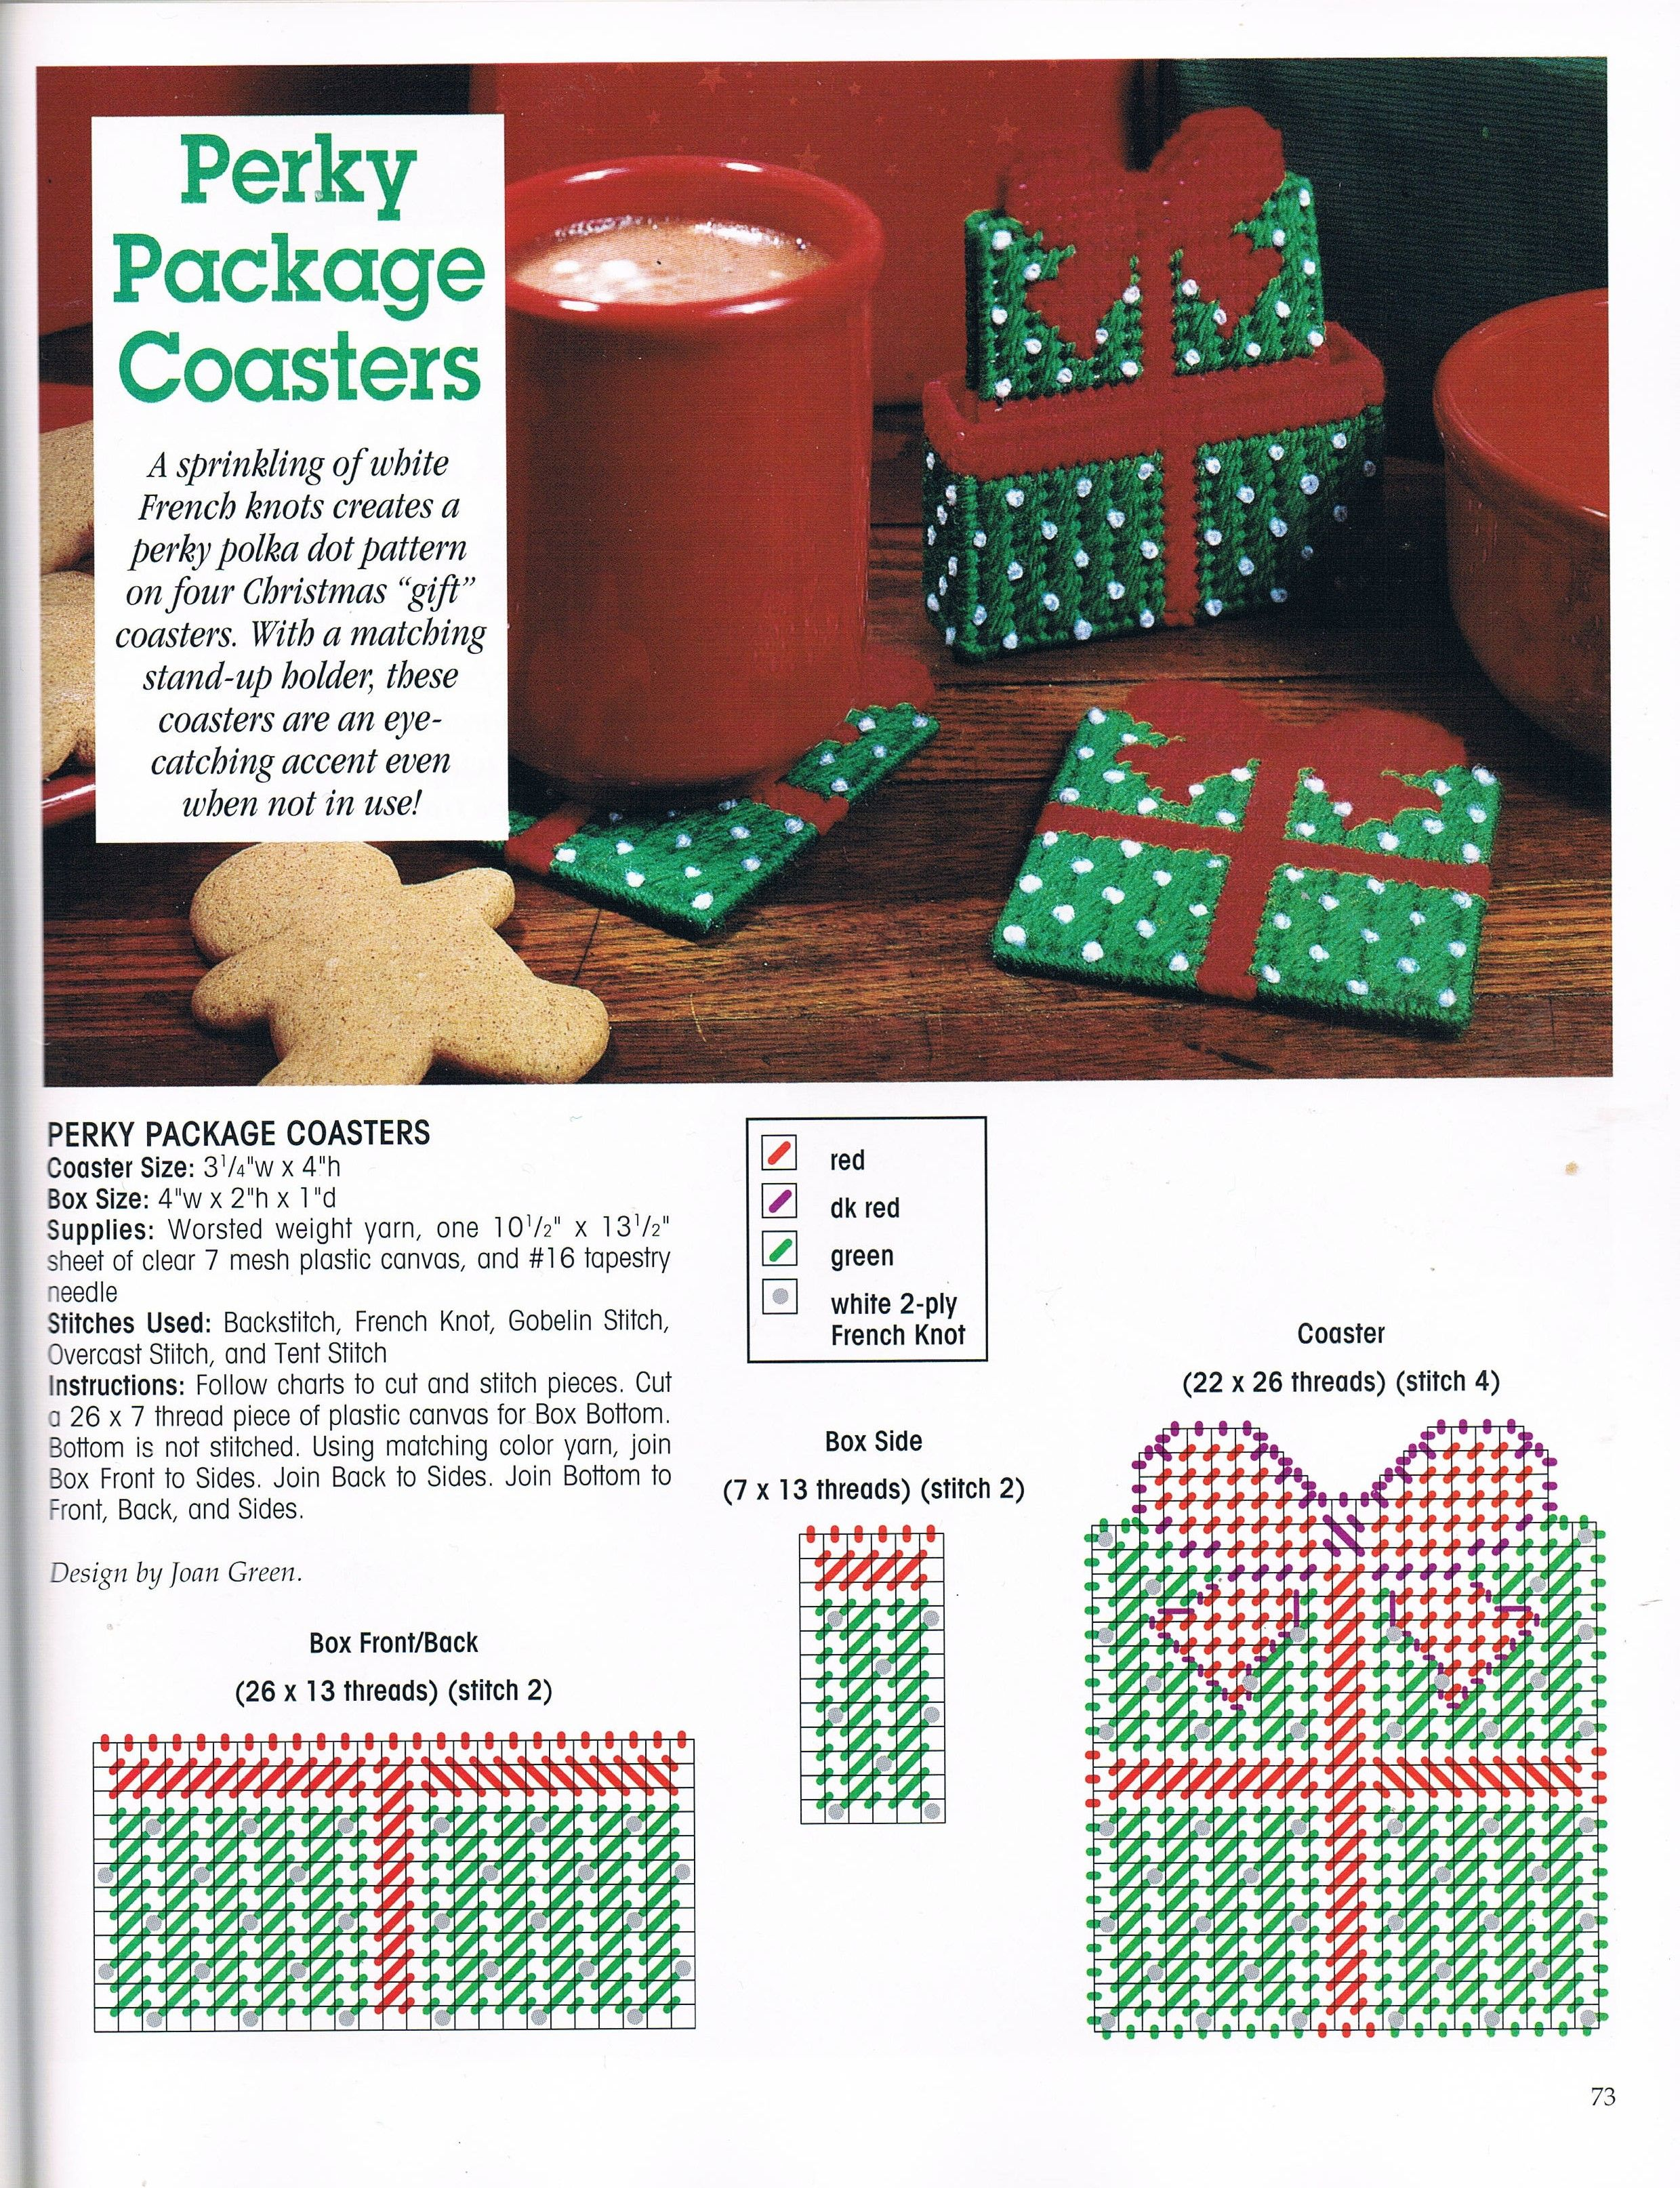 perky package coasters by joan green 1 1 from a festive christmas